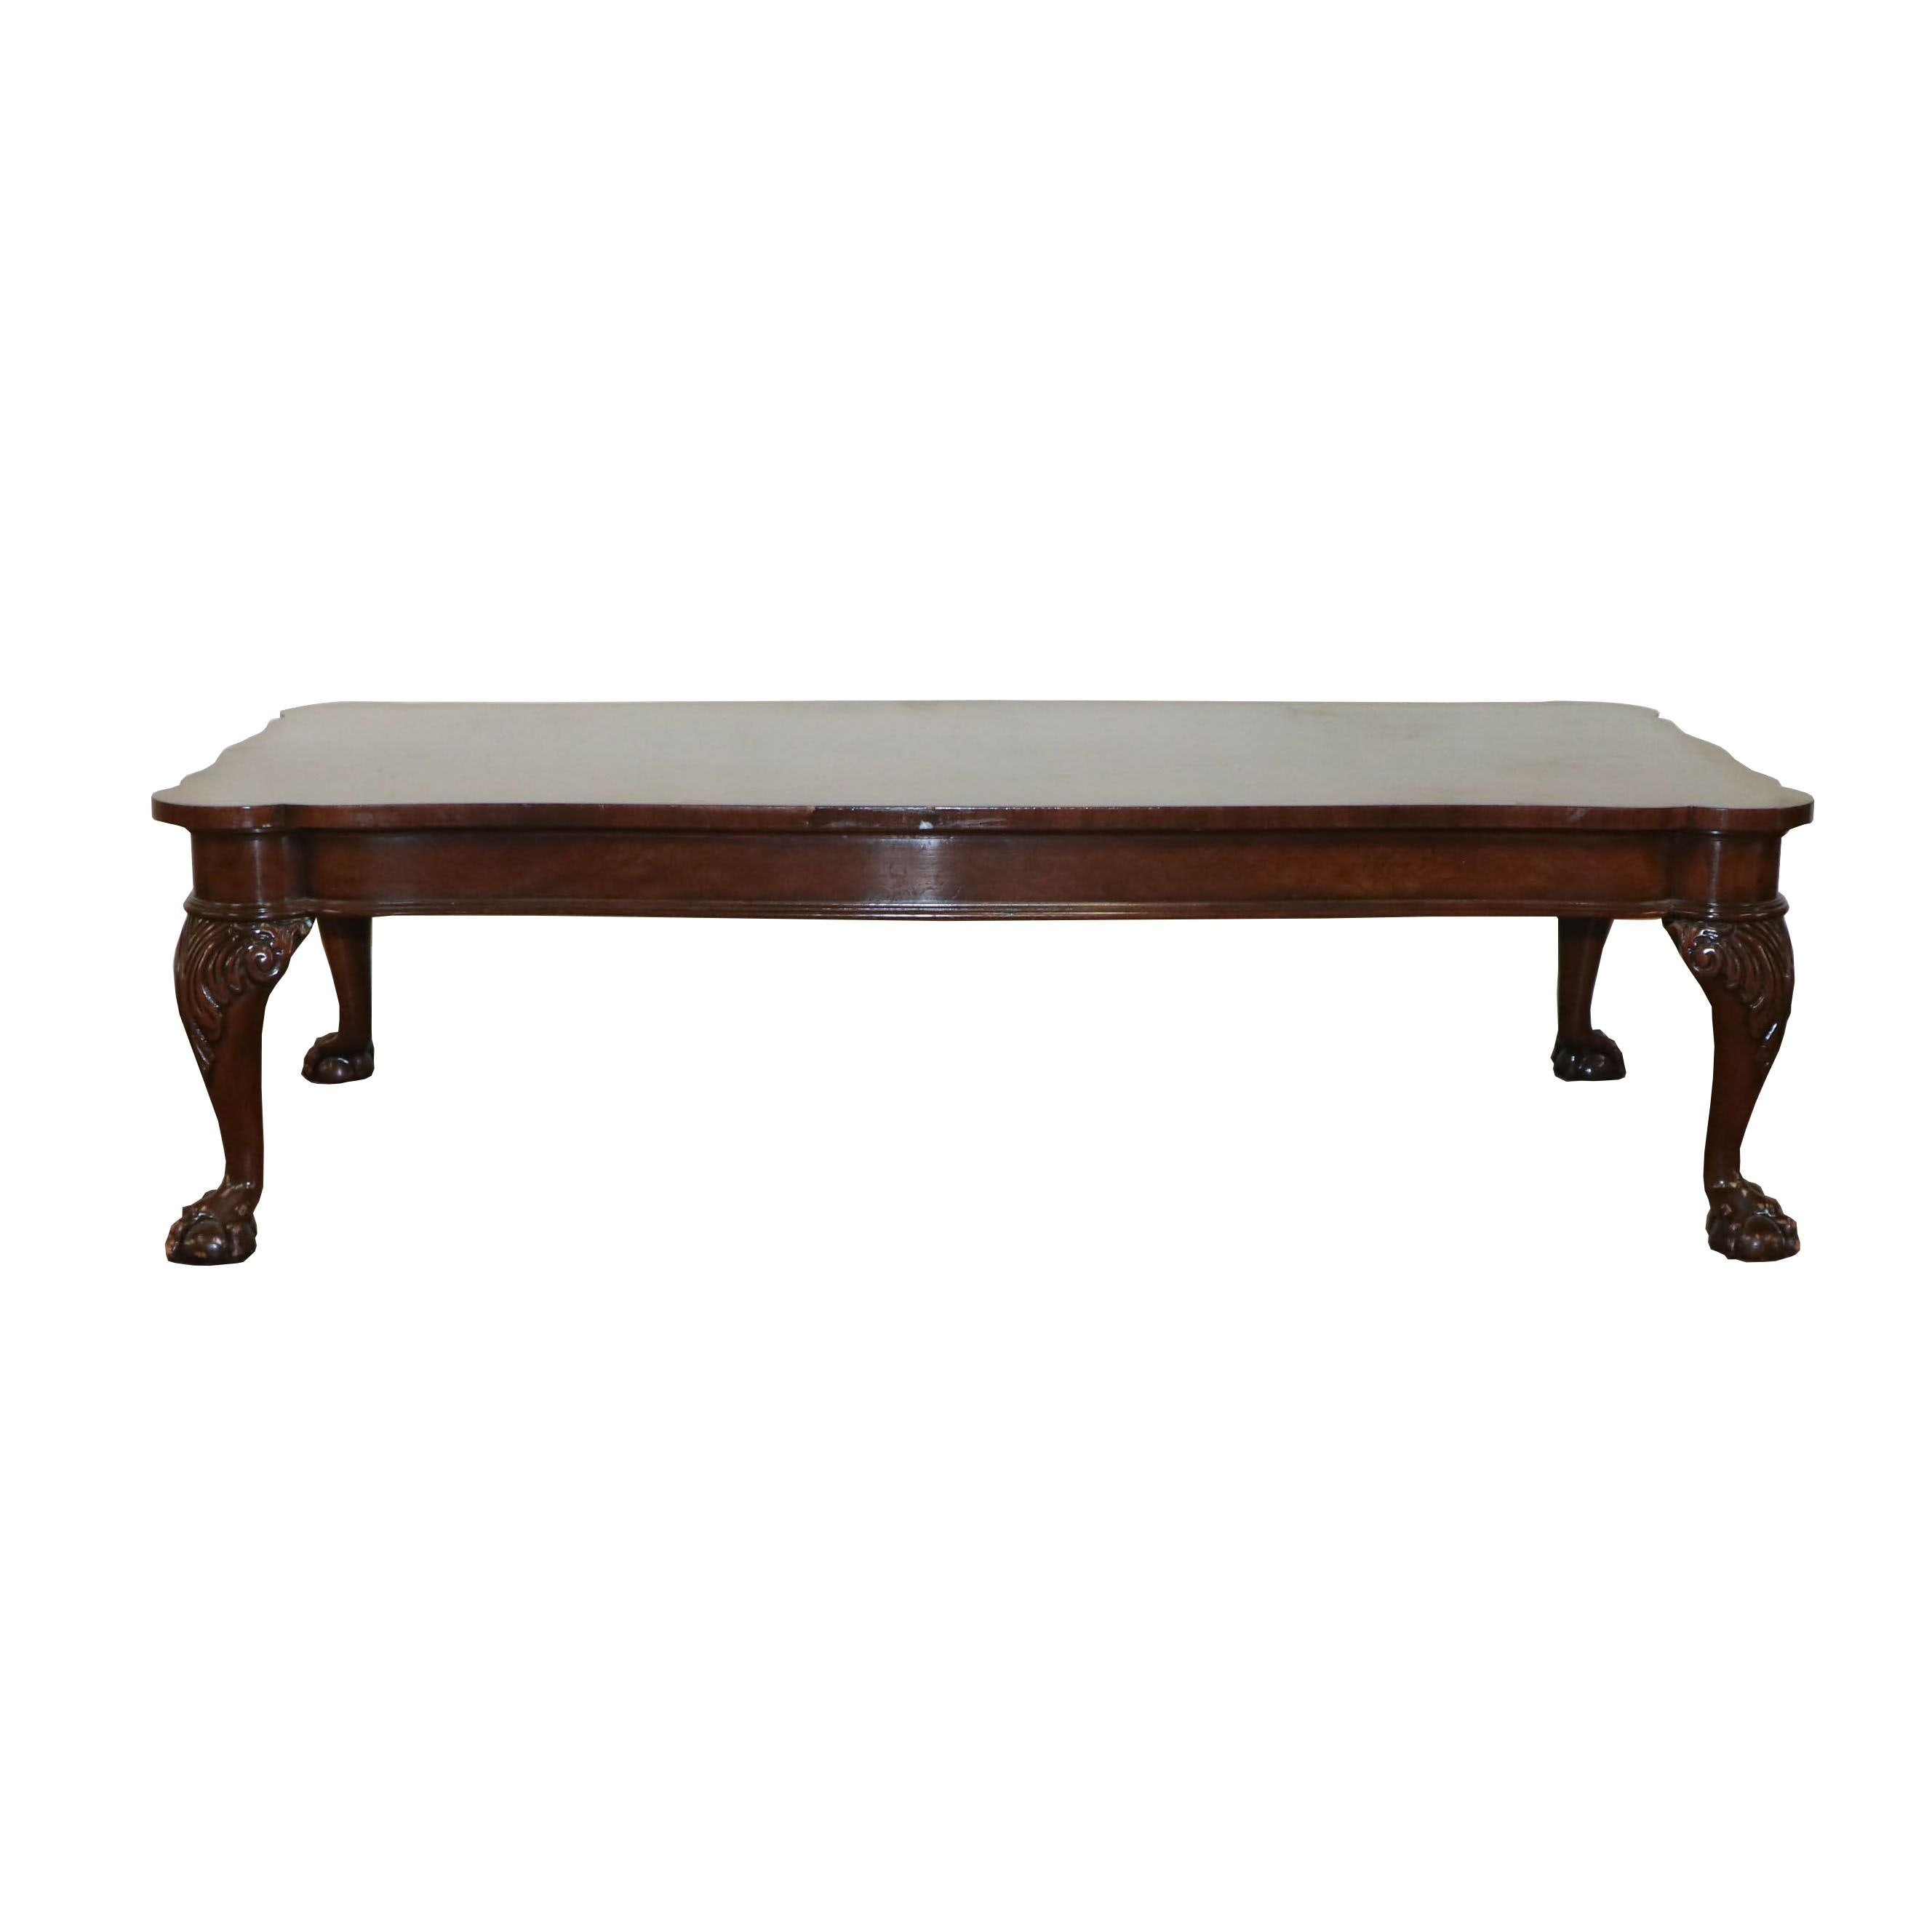 Chippendale Style Mahogany Coffee Table by Baker Furniture